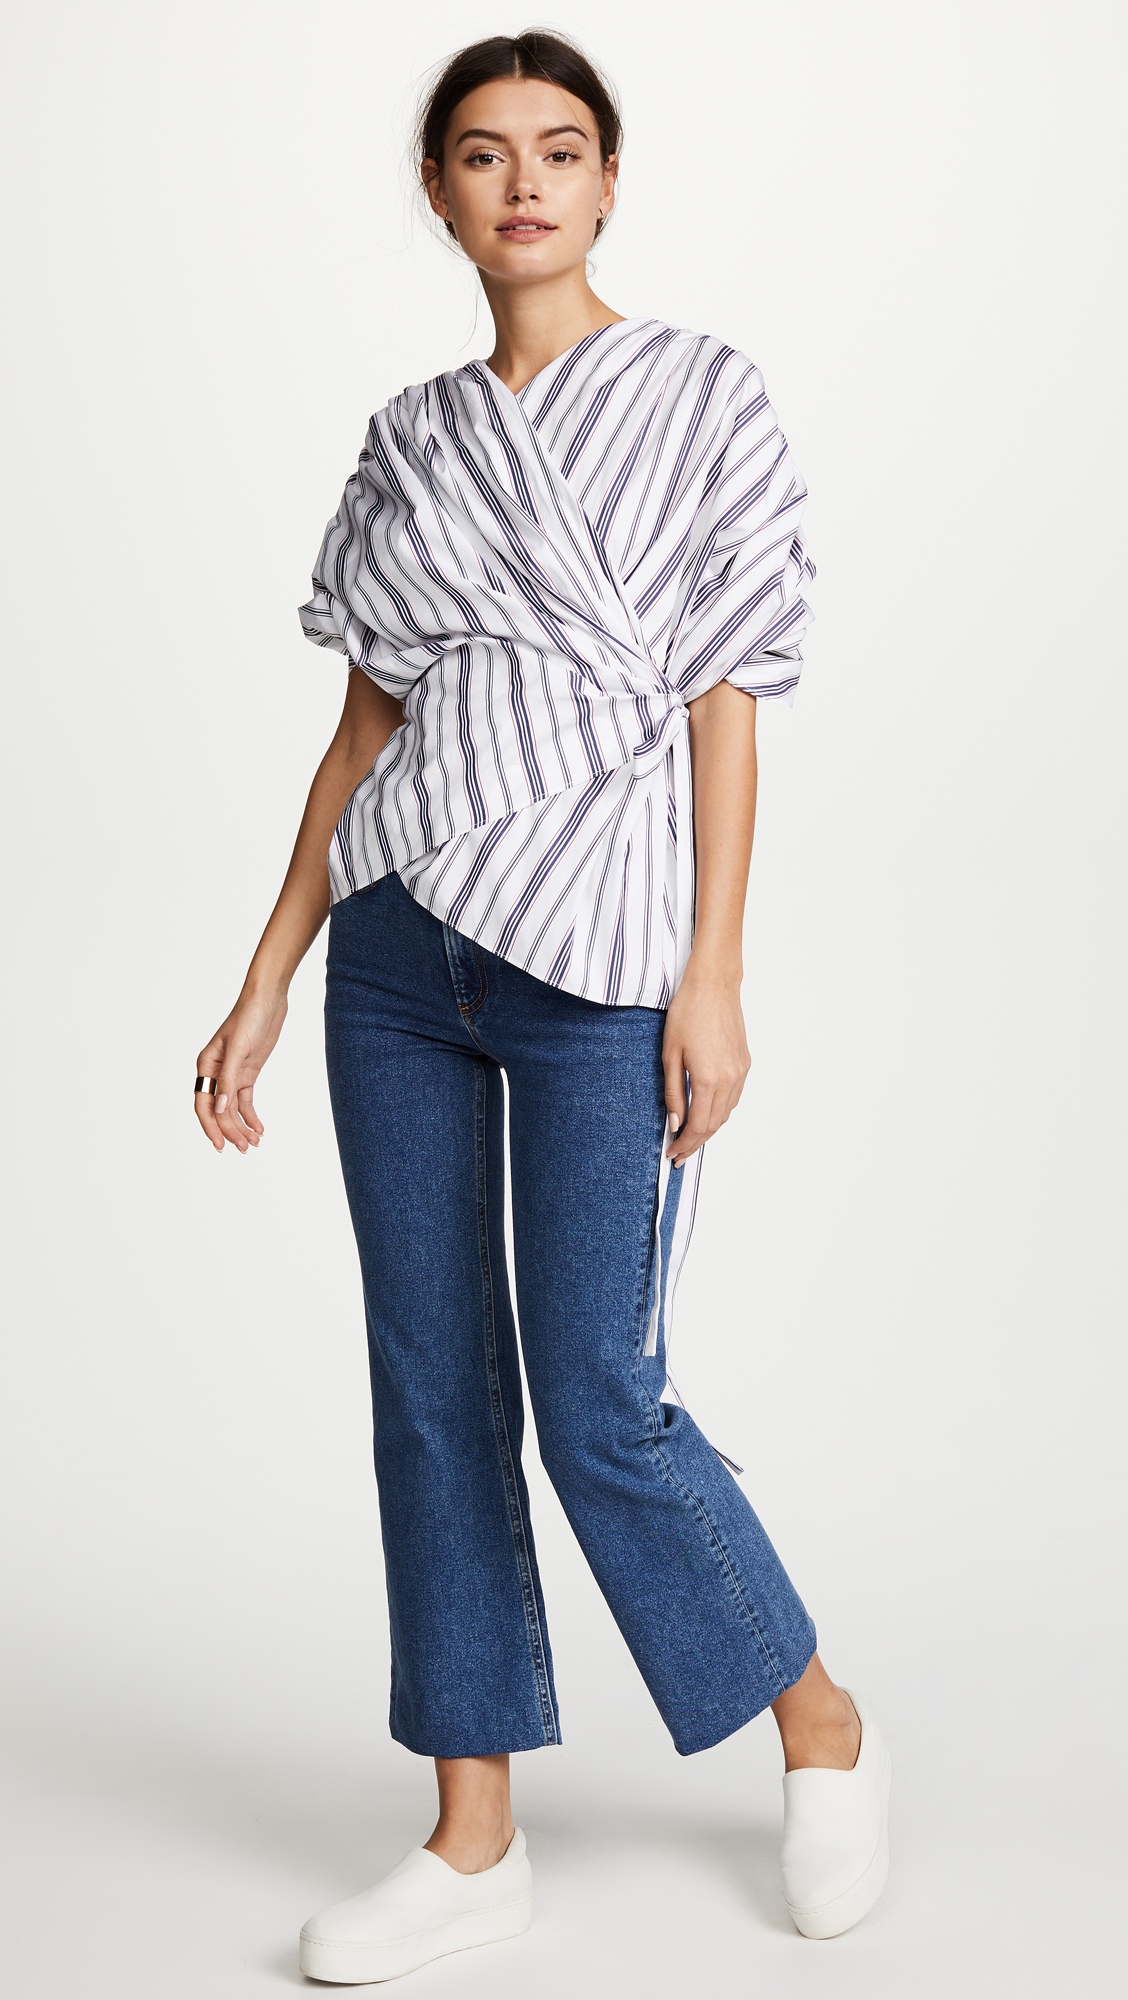 A.W.A.K.E Gathered Top, $273 (was $560)